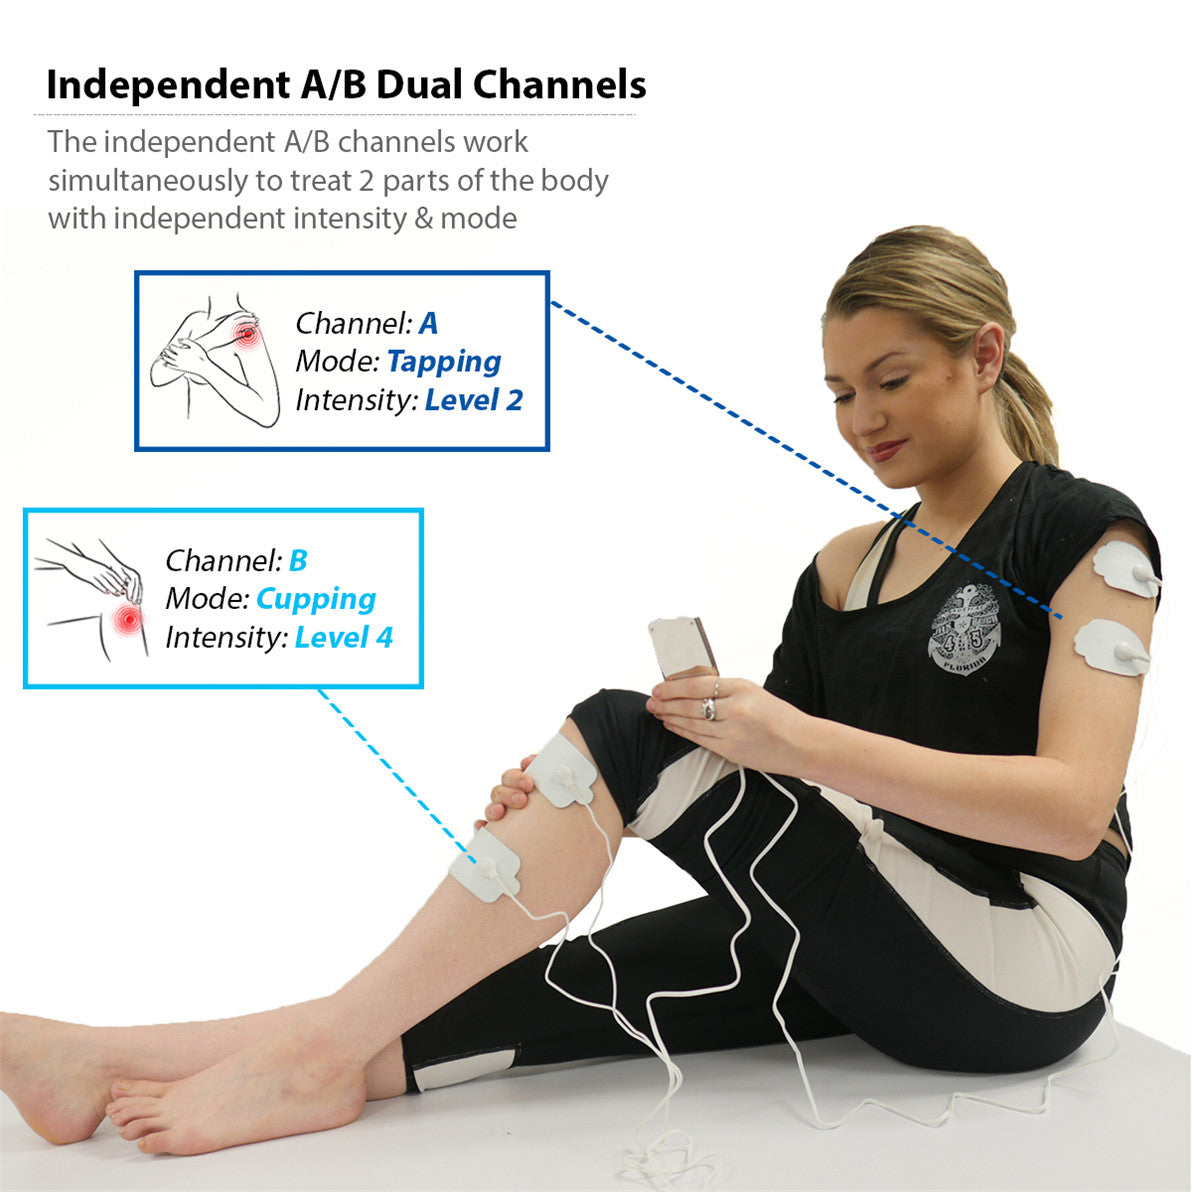 T24AB FDA Cleared 24 mode Touch Screen Pain Relief TENS UNIT - HealthmateForever